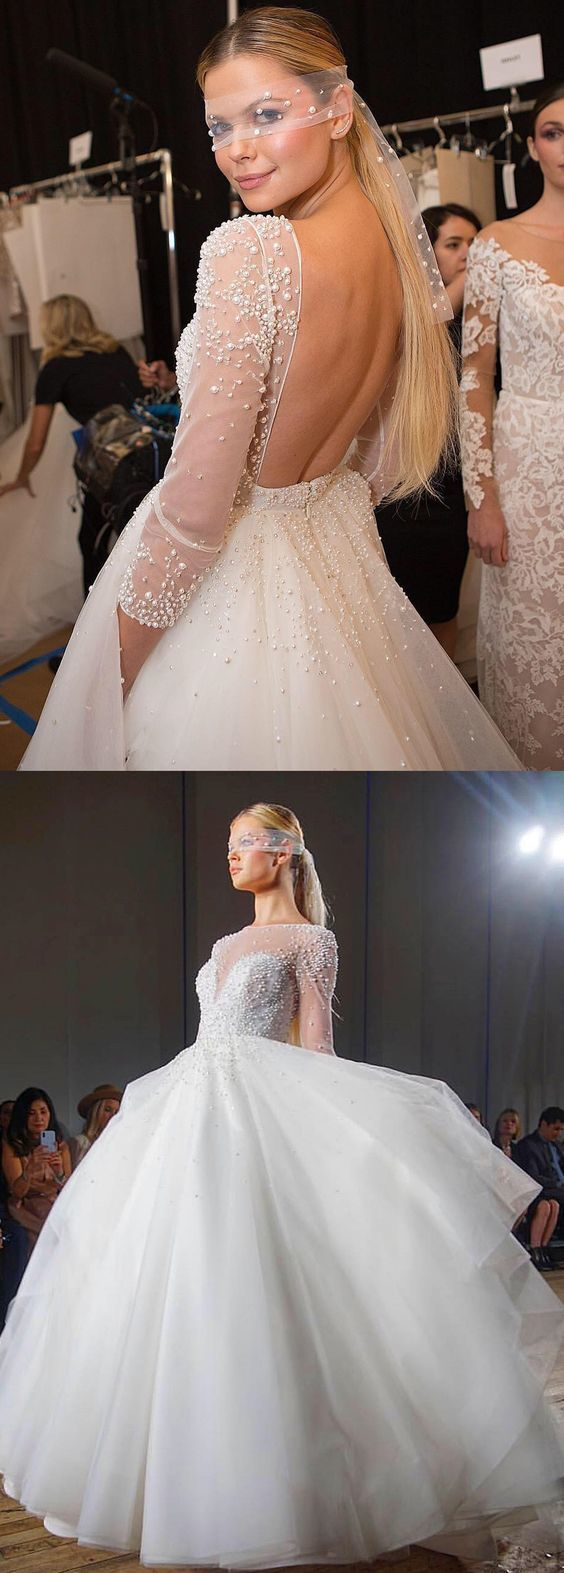 Elegant Long Sleeves White Wedidng Dress with Pearls, Backless Bridal Gowns